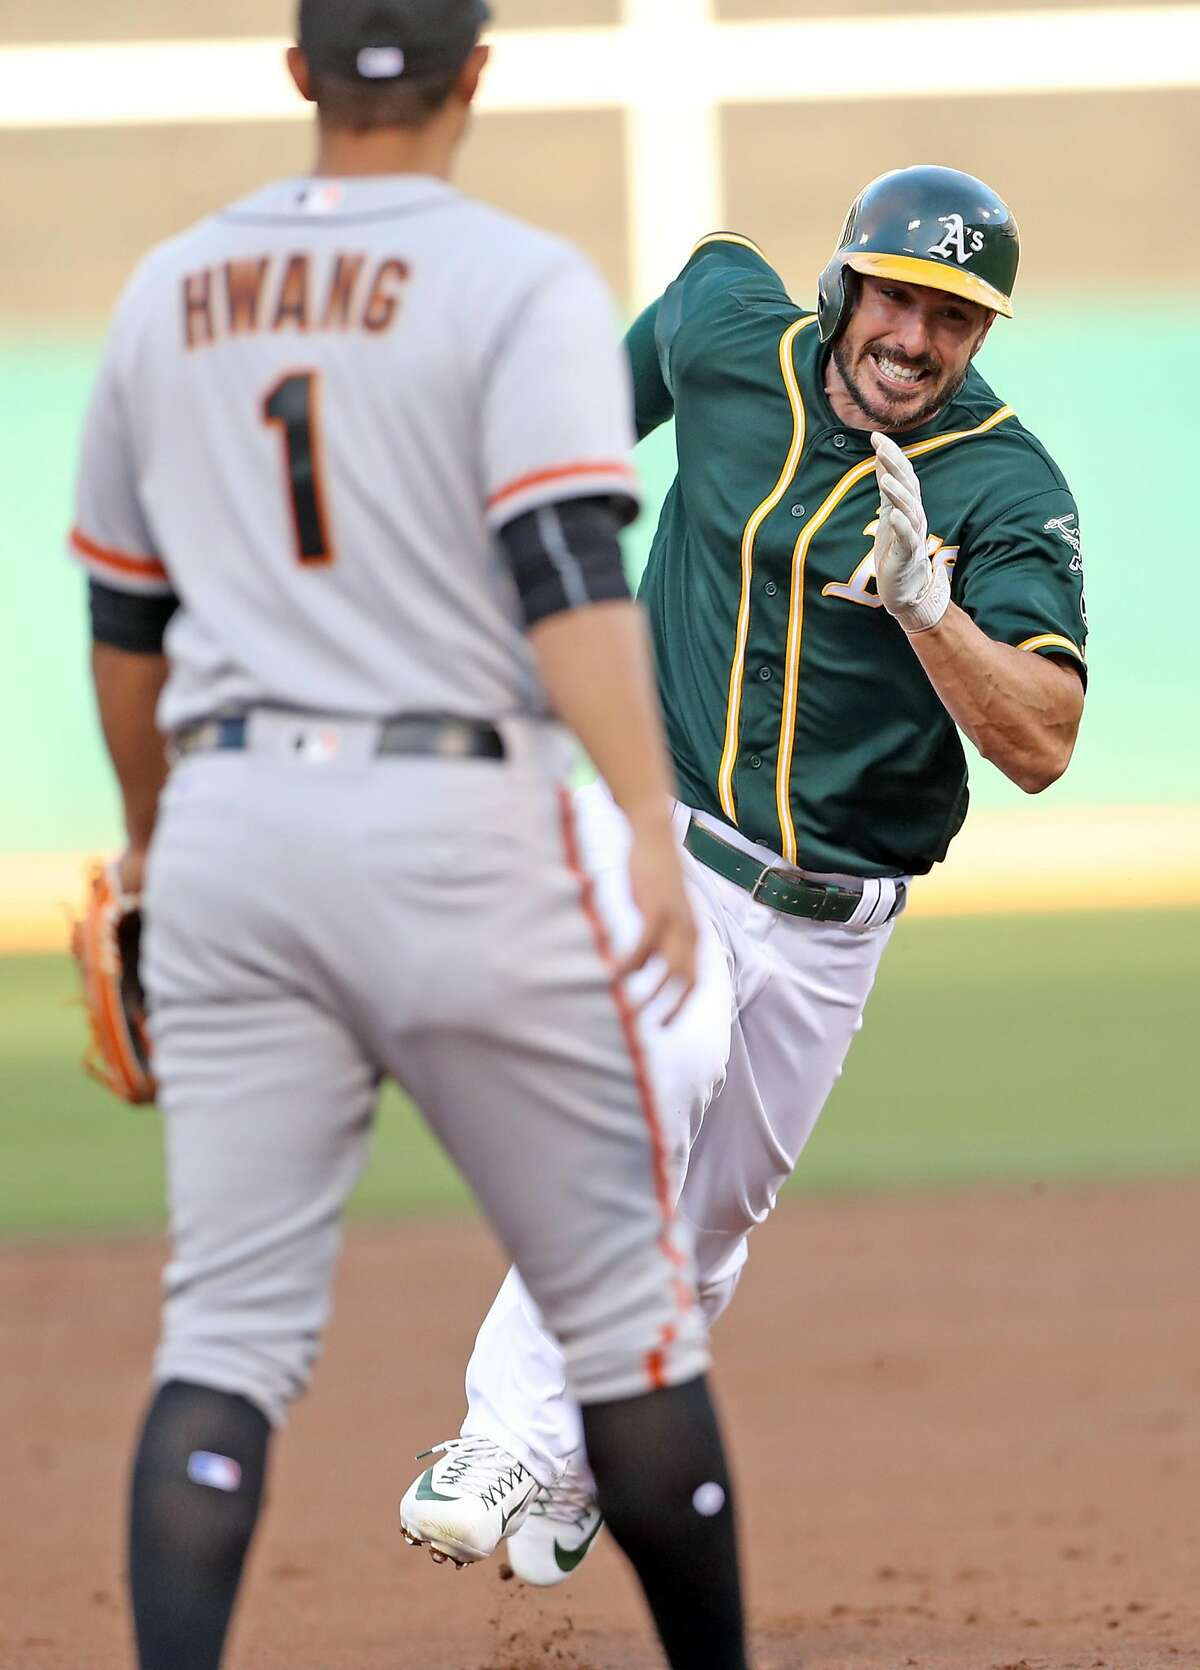 Oakland Athletics' Matt Joyce heads for third base while scoring on Jed Lowrie's RBI single in 1st inning against San Francisco Giants during MLB game at Oakland Coliseum in Oakland, Calif. on Monday, July 31, 2017.